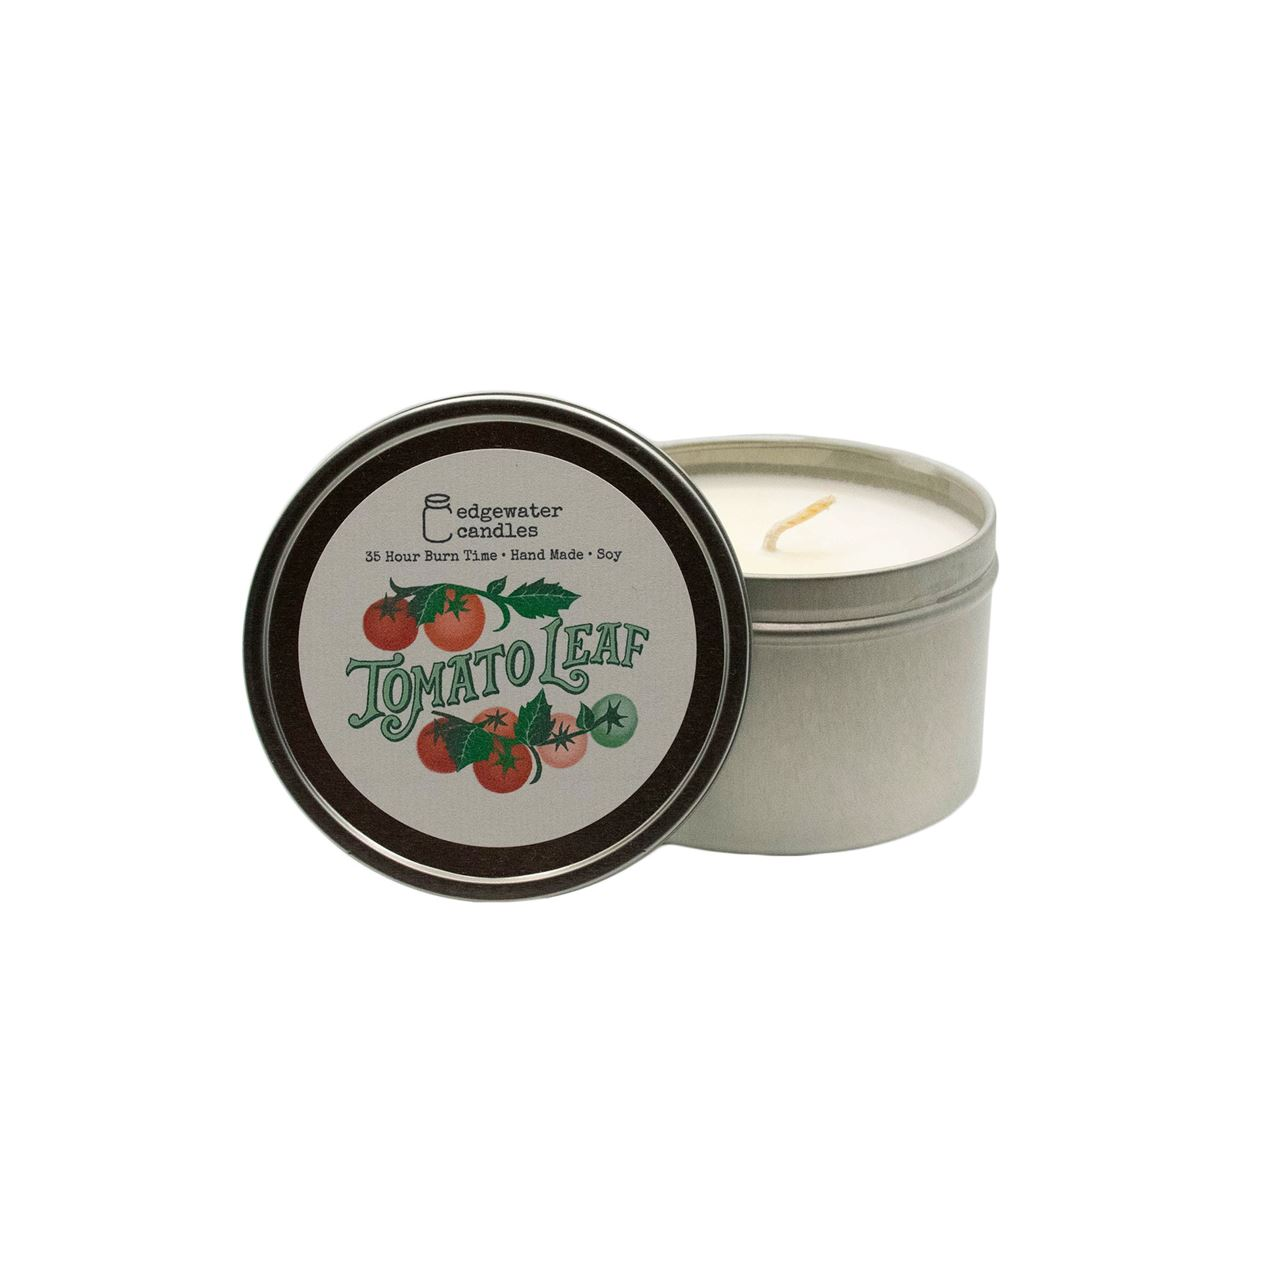 Tomato Leaf Travel Tin by Edgewater Candles